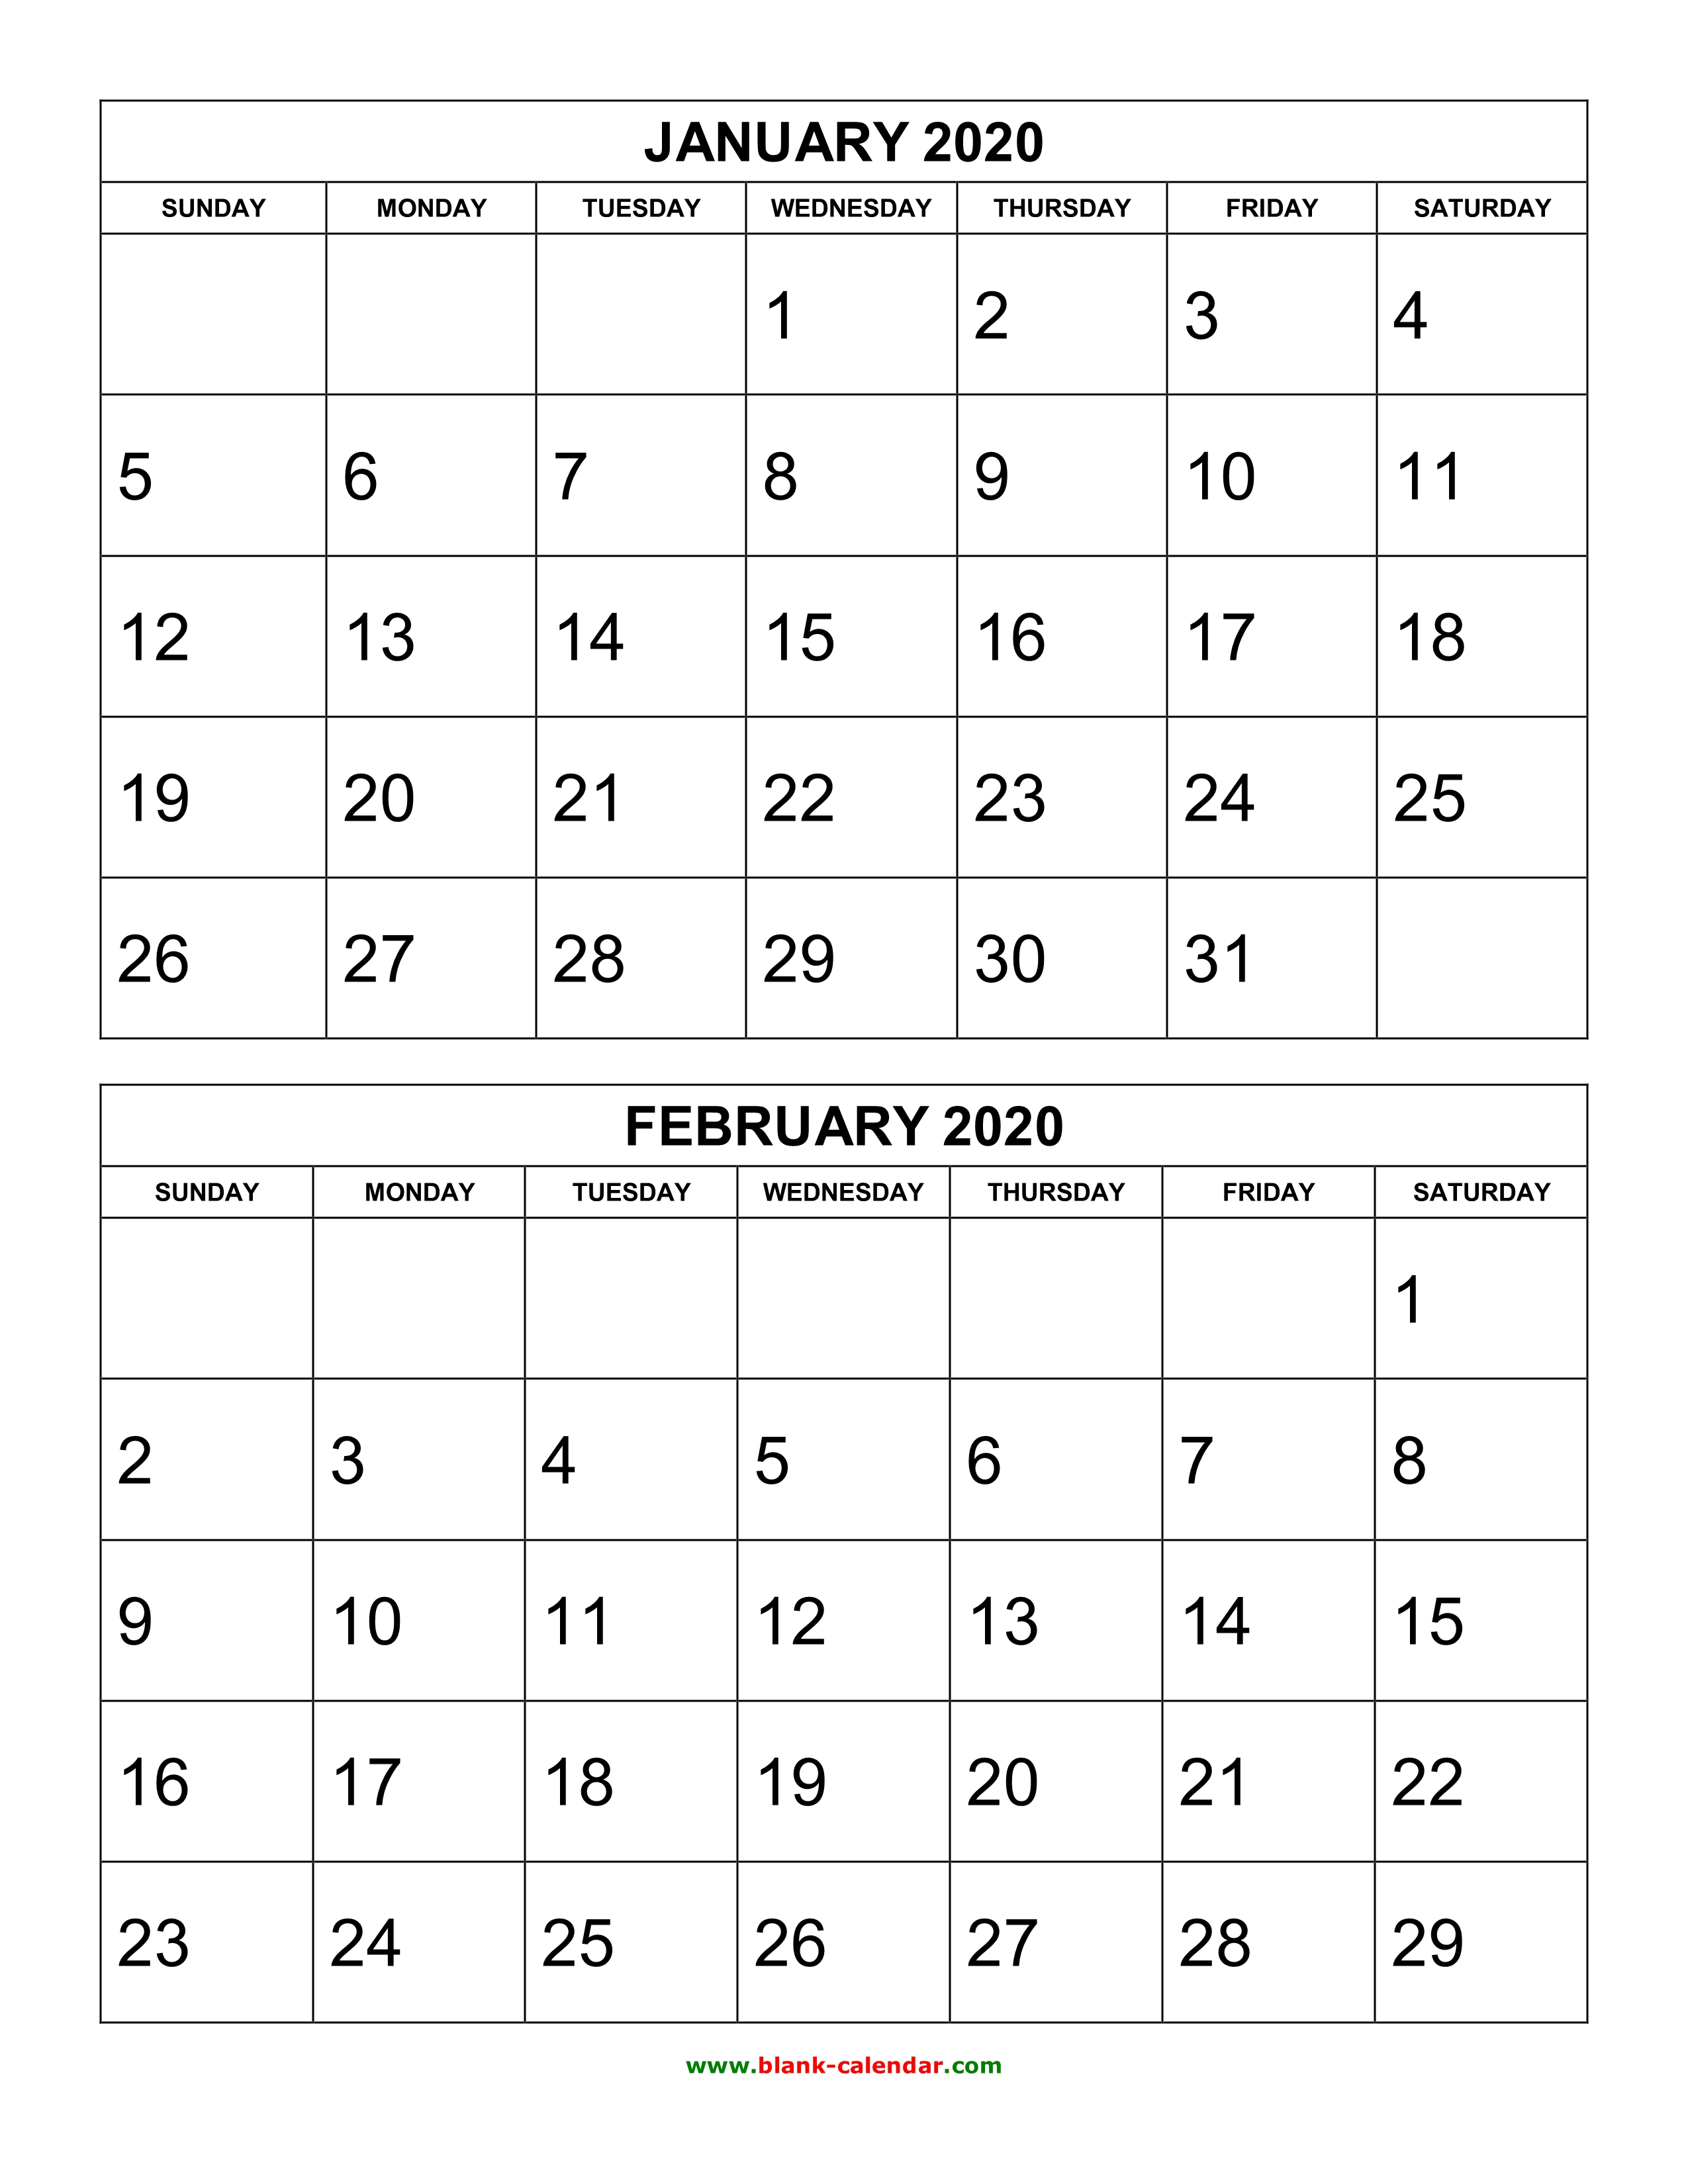 Free Download Printable Calendar 2020, 2 Months Per Page, 6 Pages regarding 2020 Printable Calendar By Month